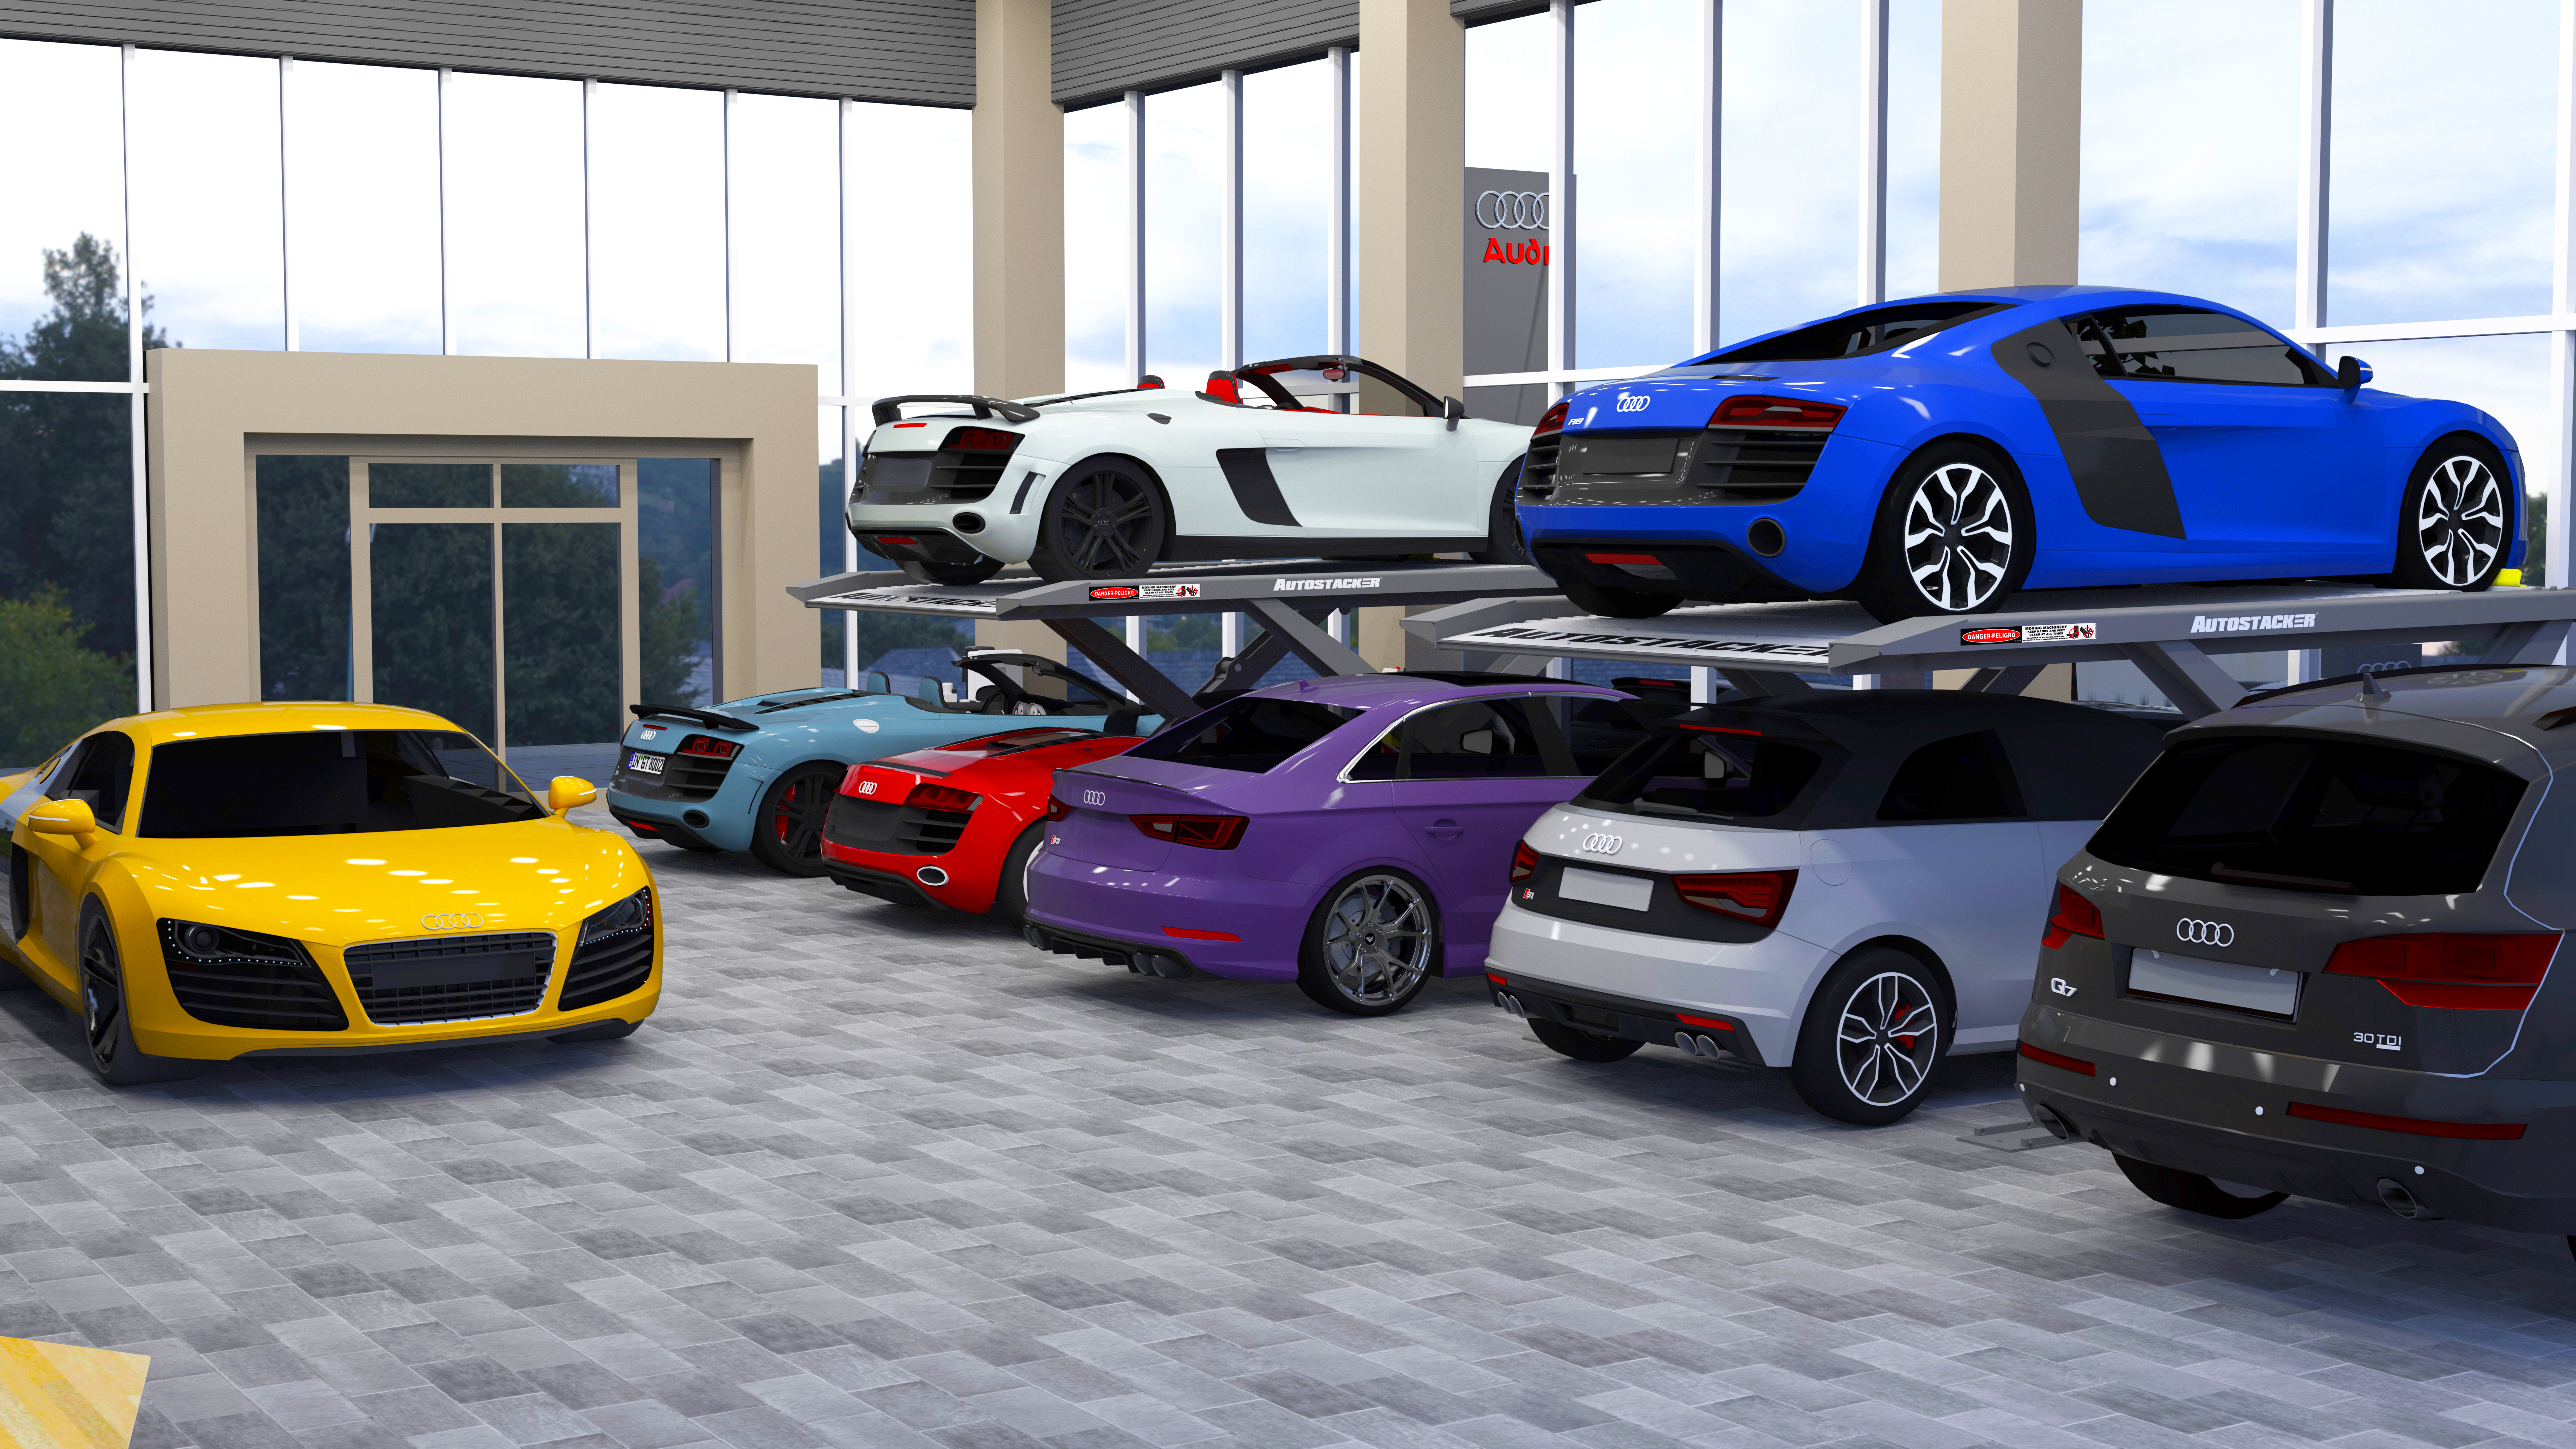 Dealership Audi Autostacker-Visualize Brighter (1)